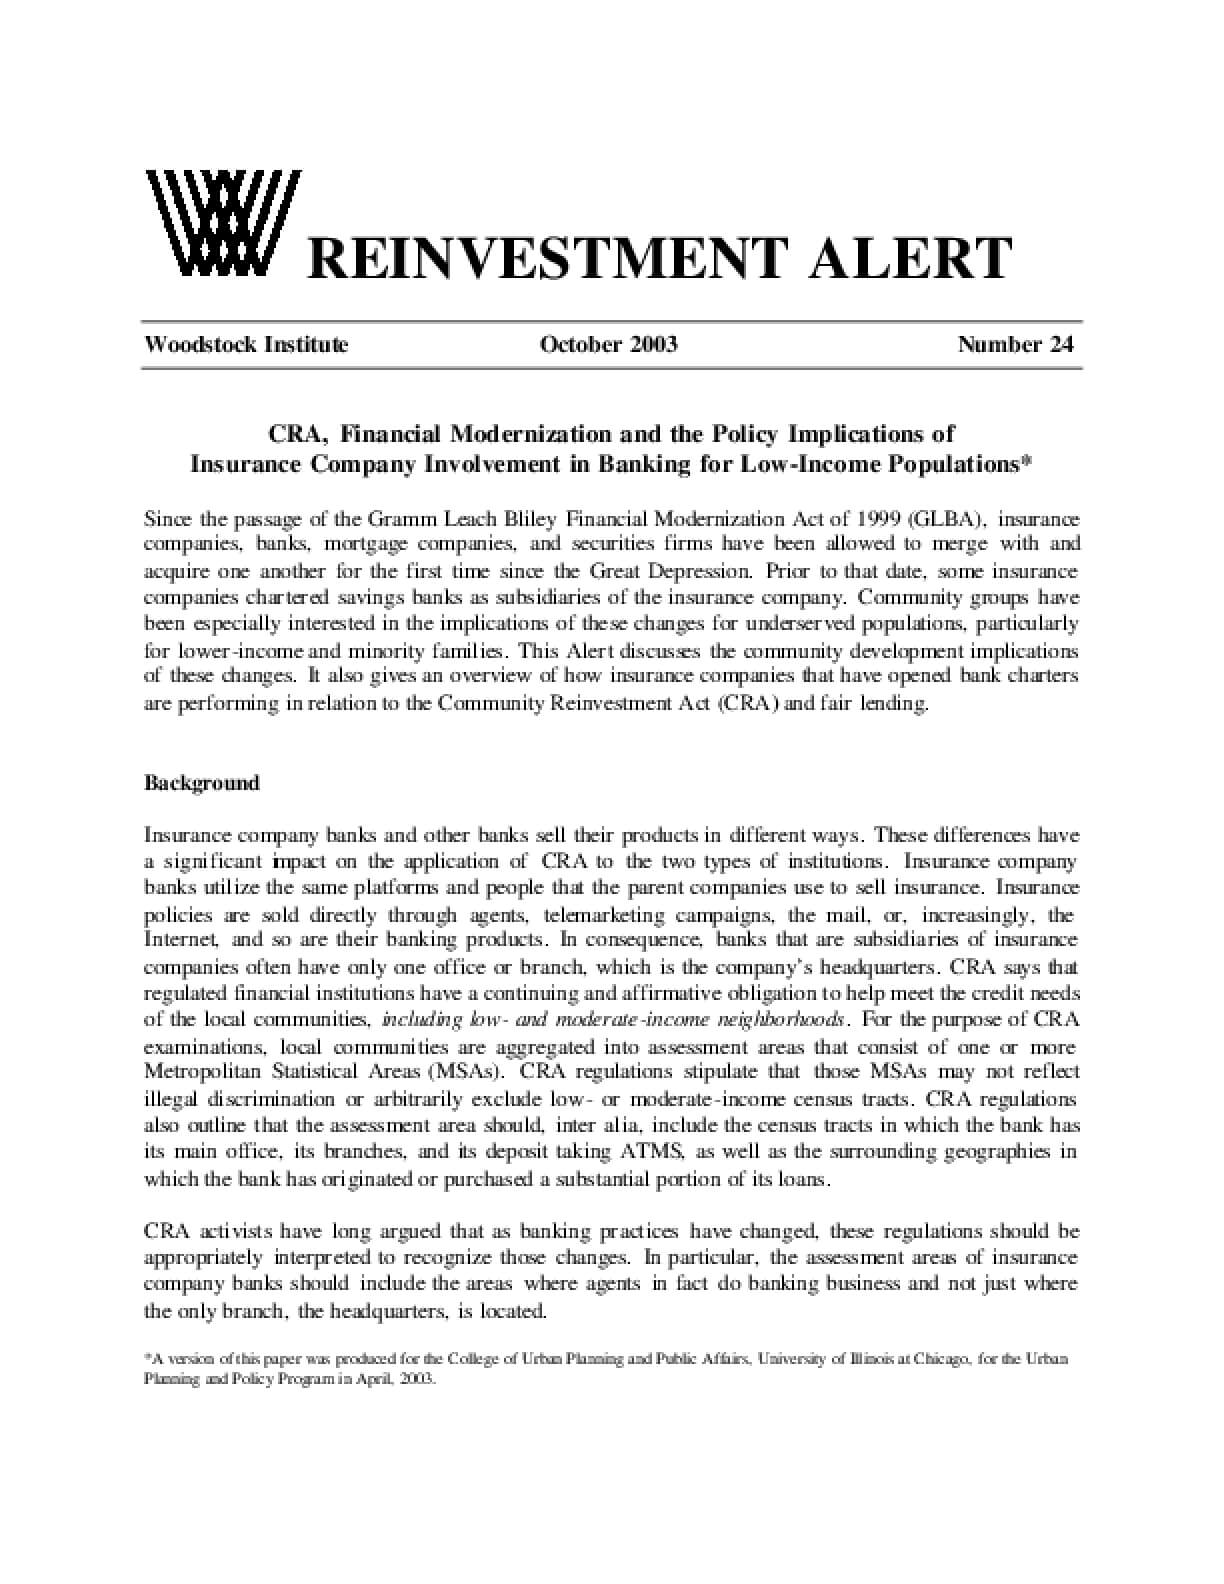 Reinvestment Alert 24: CRA, Financial Modernization and the Policy Implications of Insurance Company